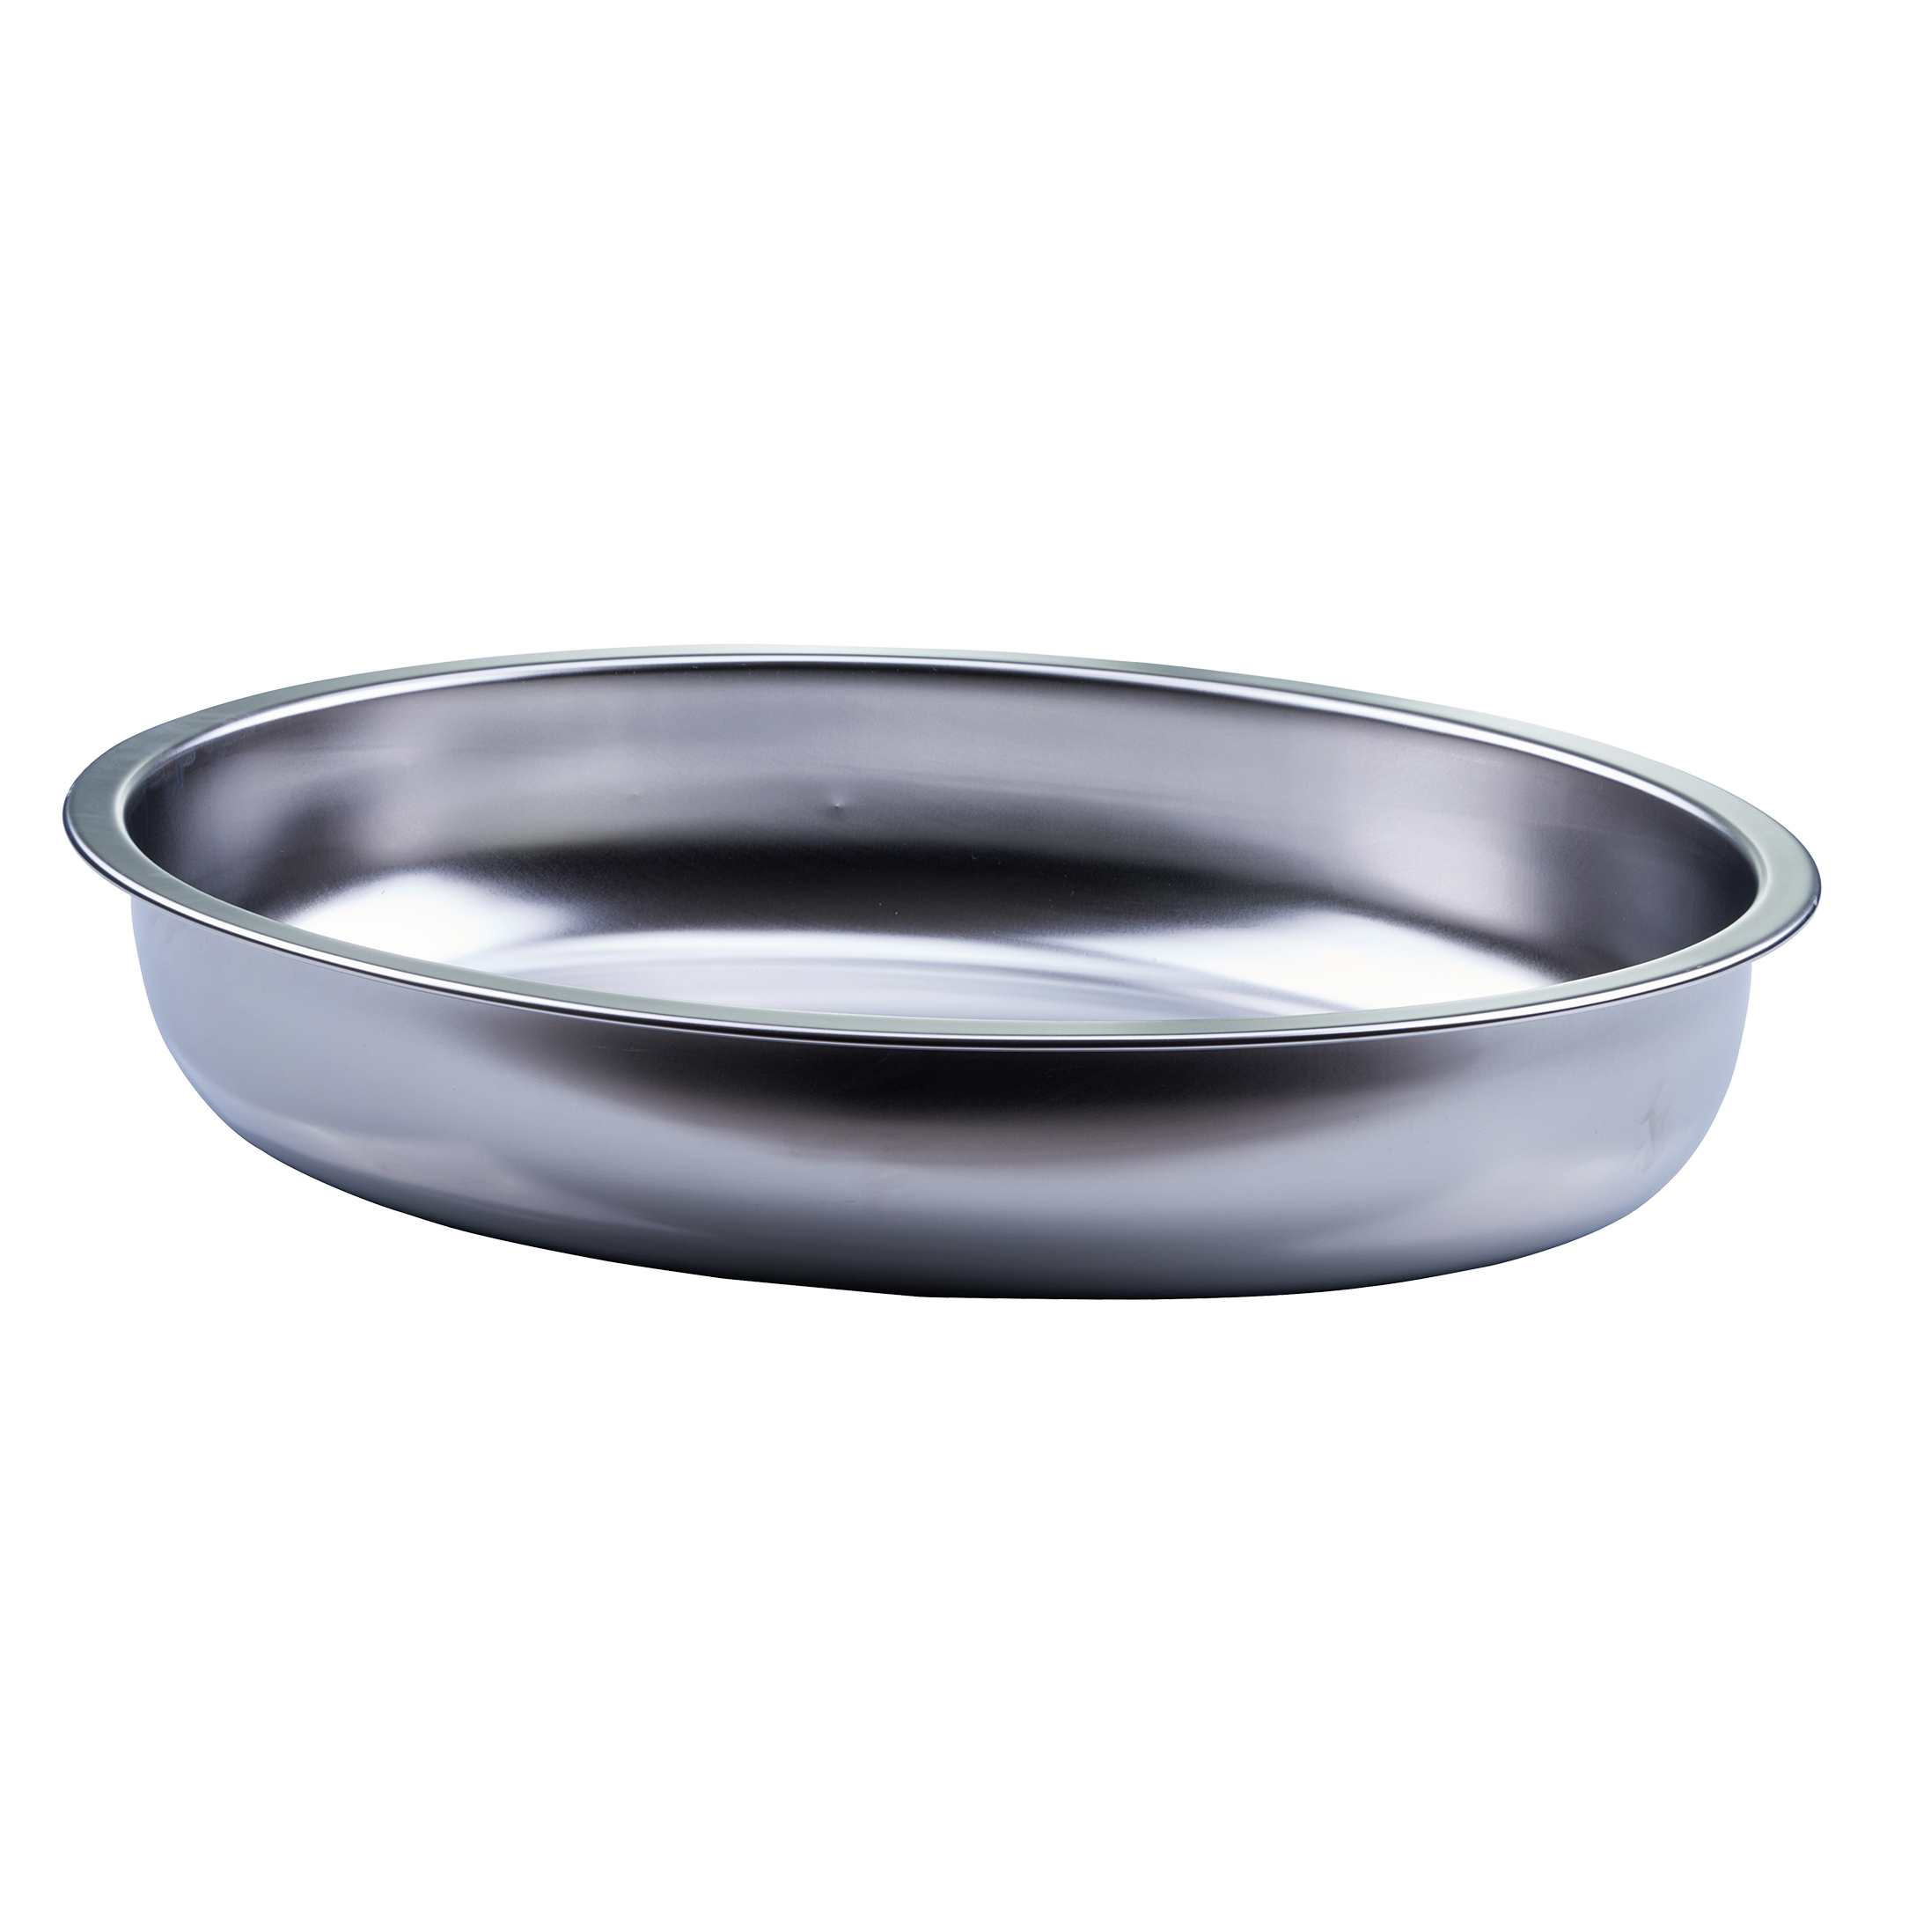 Winco 603-WP chafing dish pan